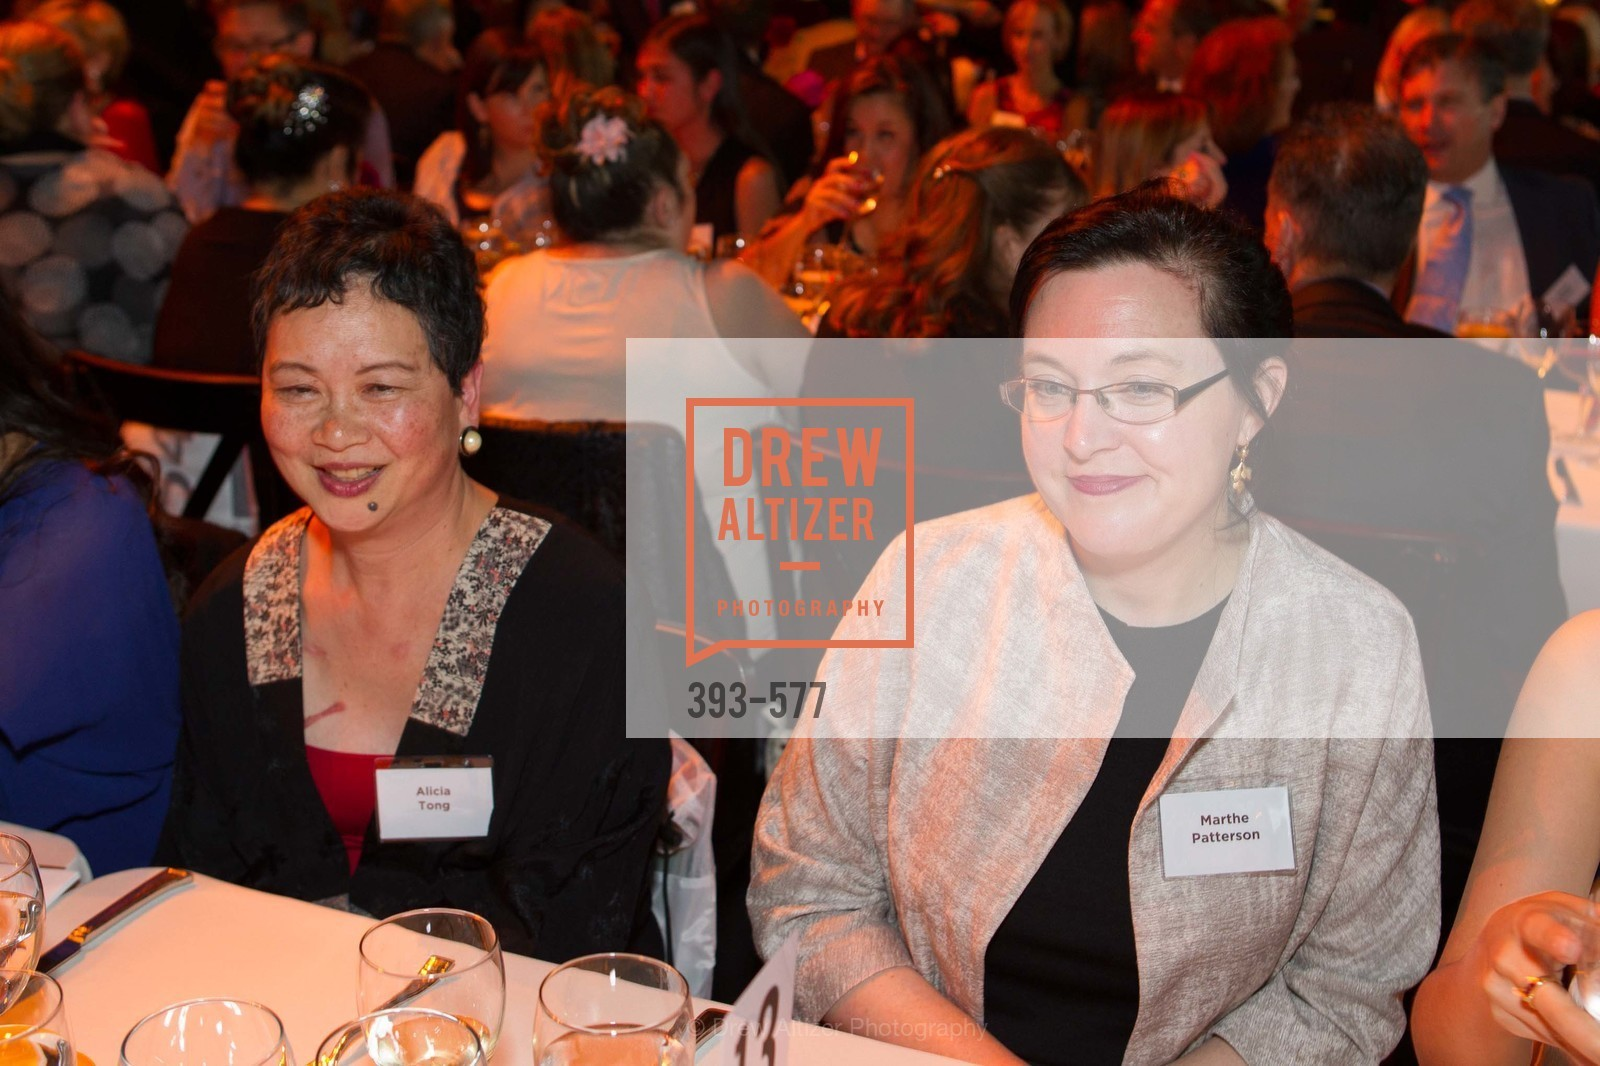 Alcia Tong, Marthe Patterson, SF-MARIN FOOD BANK One Big Table Gala, US, September 27th, 2014,Drew Altizer, Drew Altizer Photography, full-service agency, private events, San Francisco photographer, photographer california